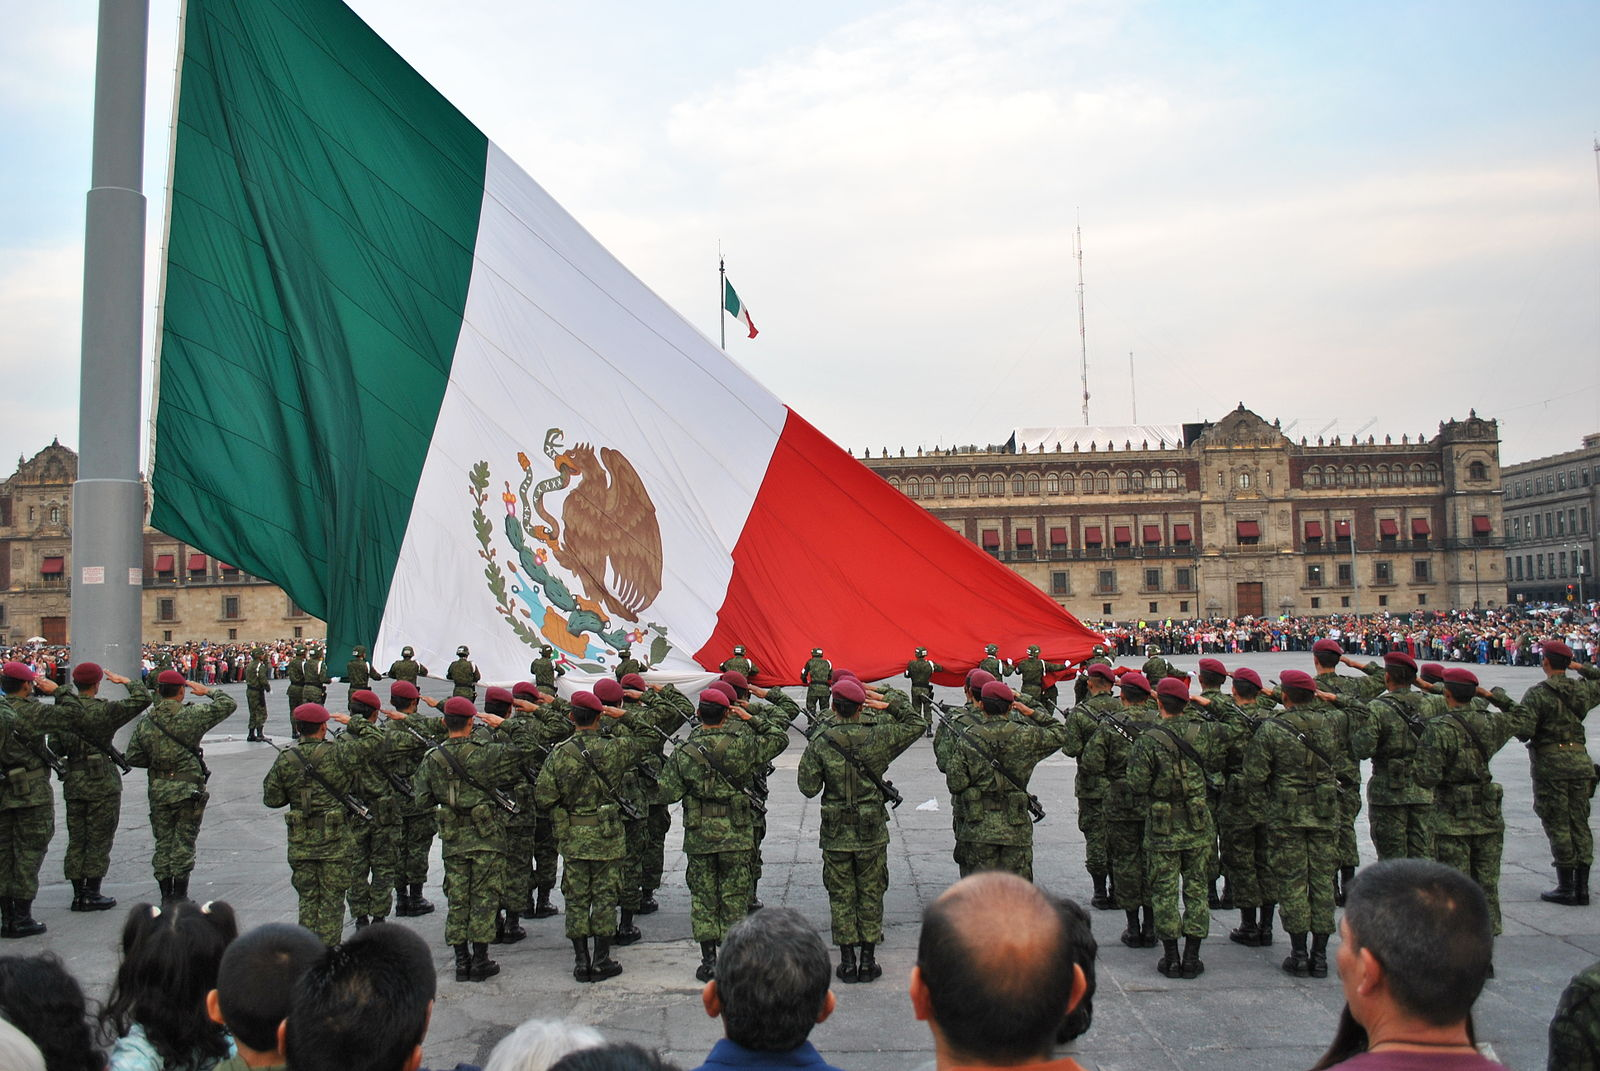 Mexico Failed to Provide Human Rights Training to Armed Forces